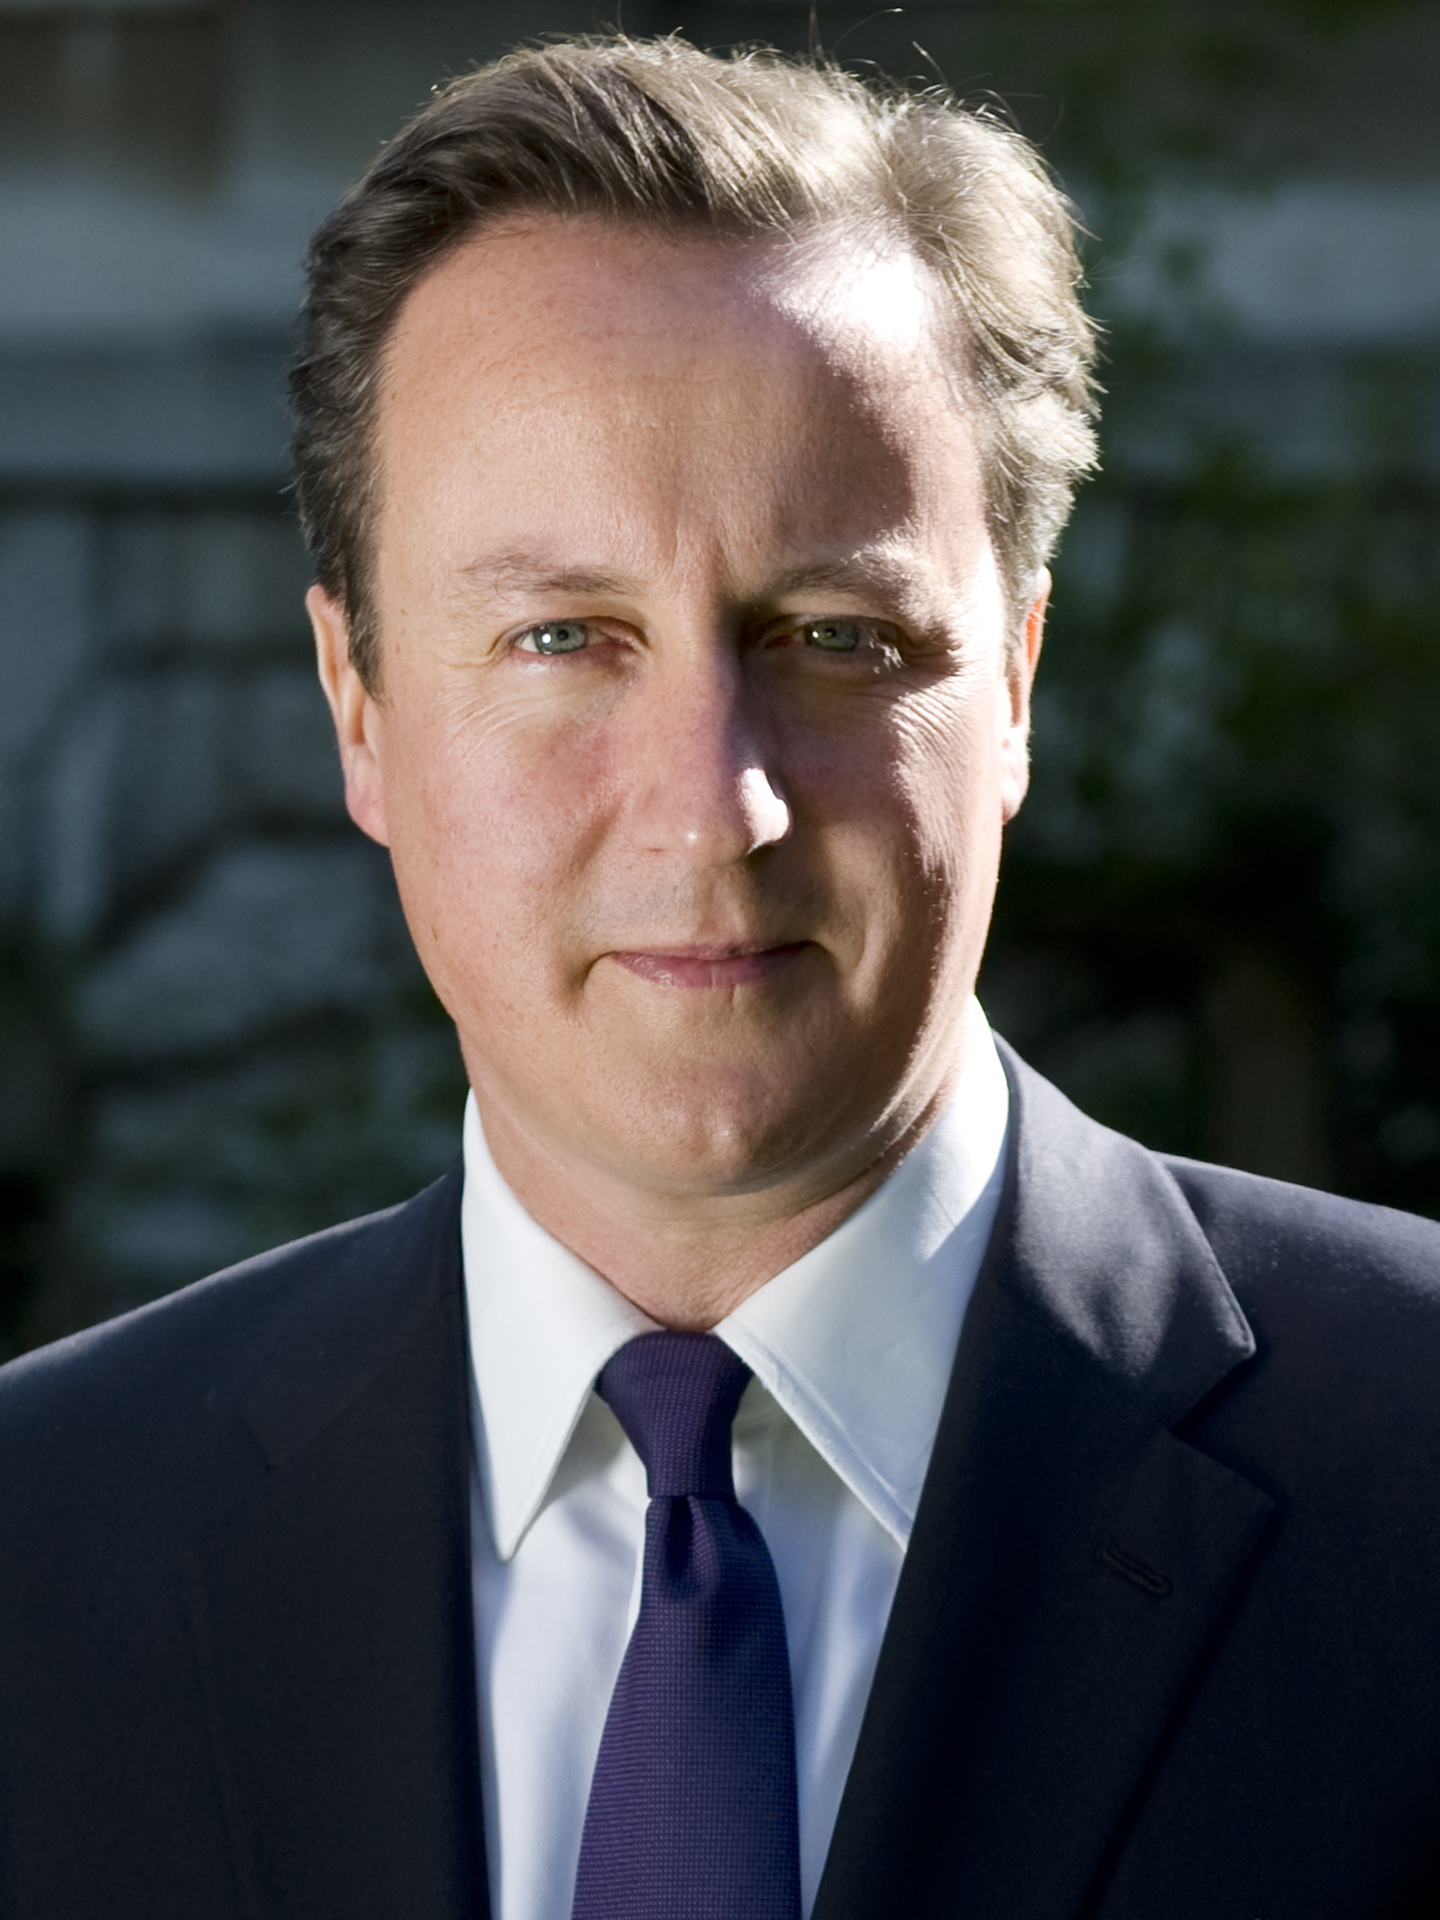 File:David Cameron official.jpg